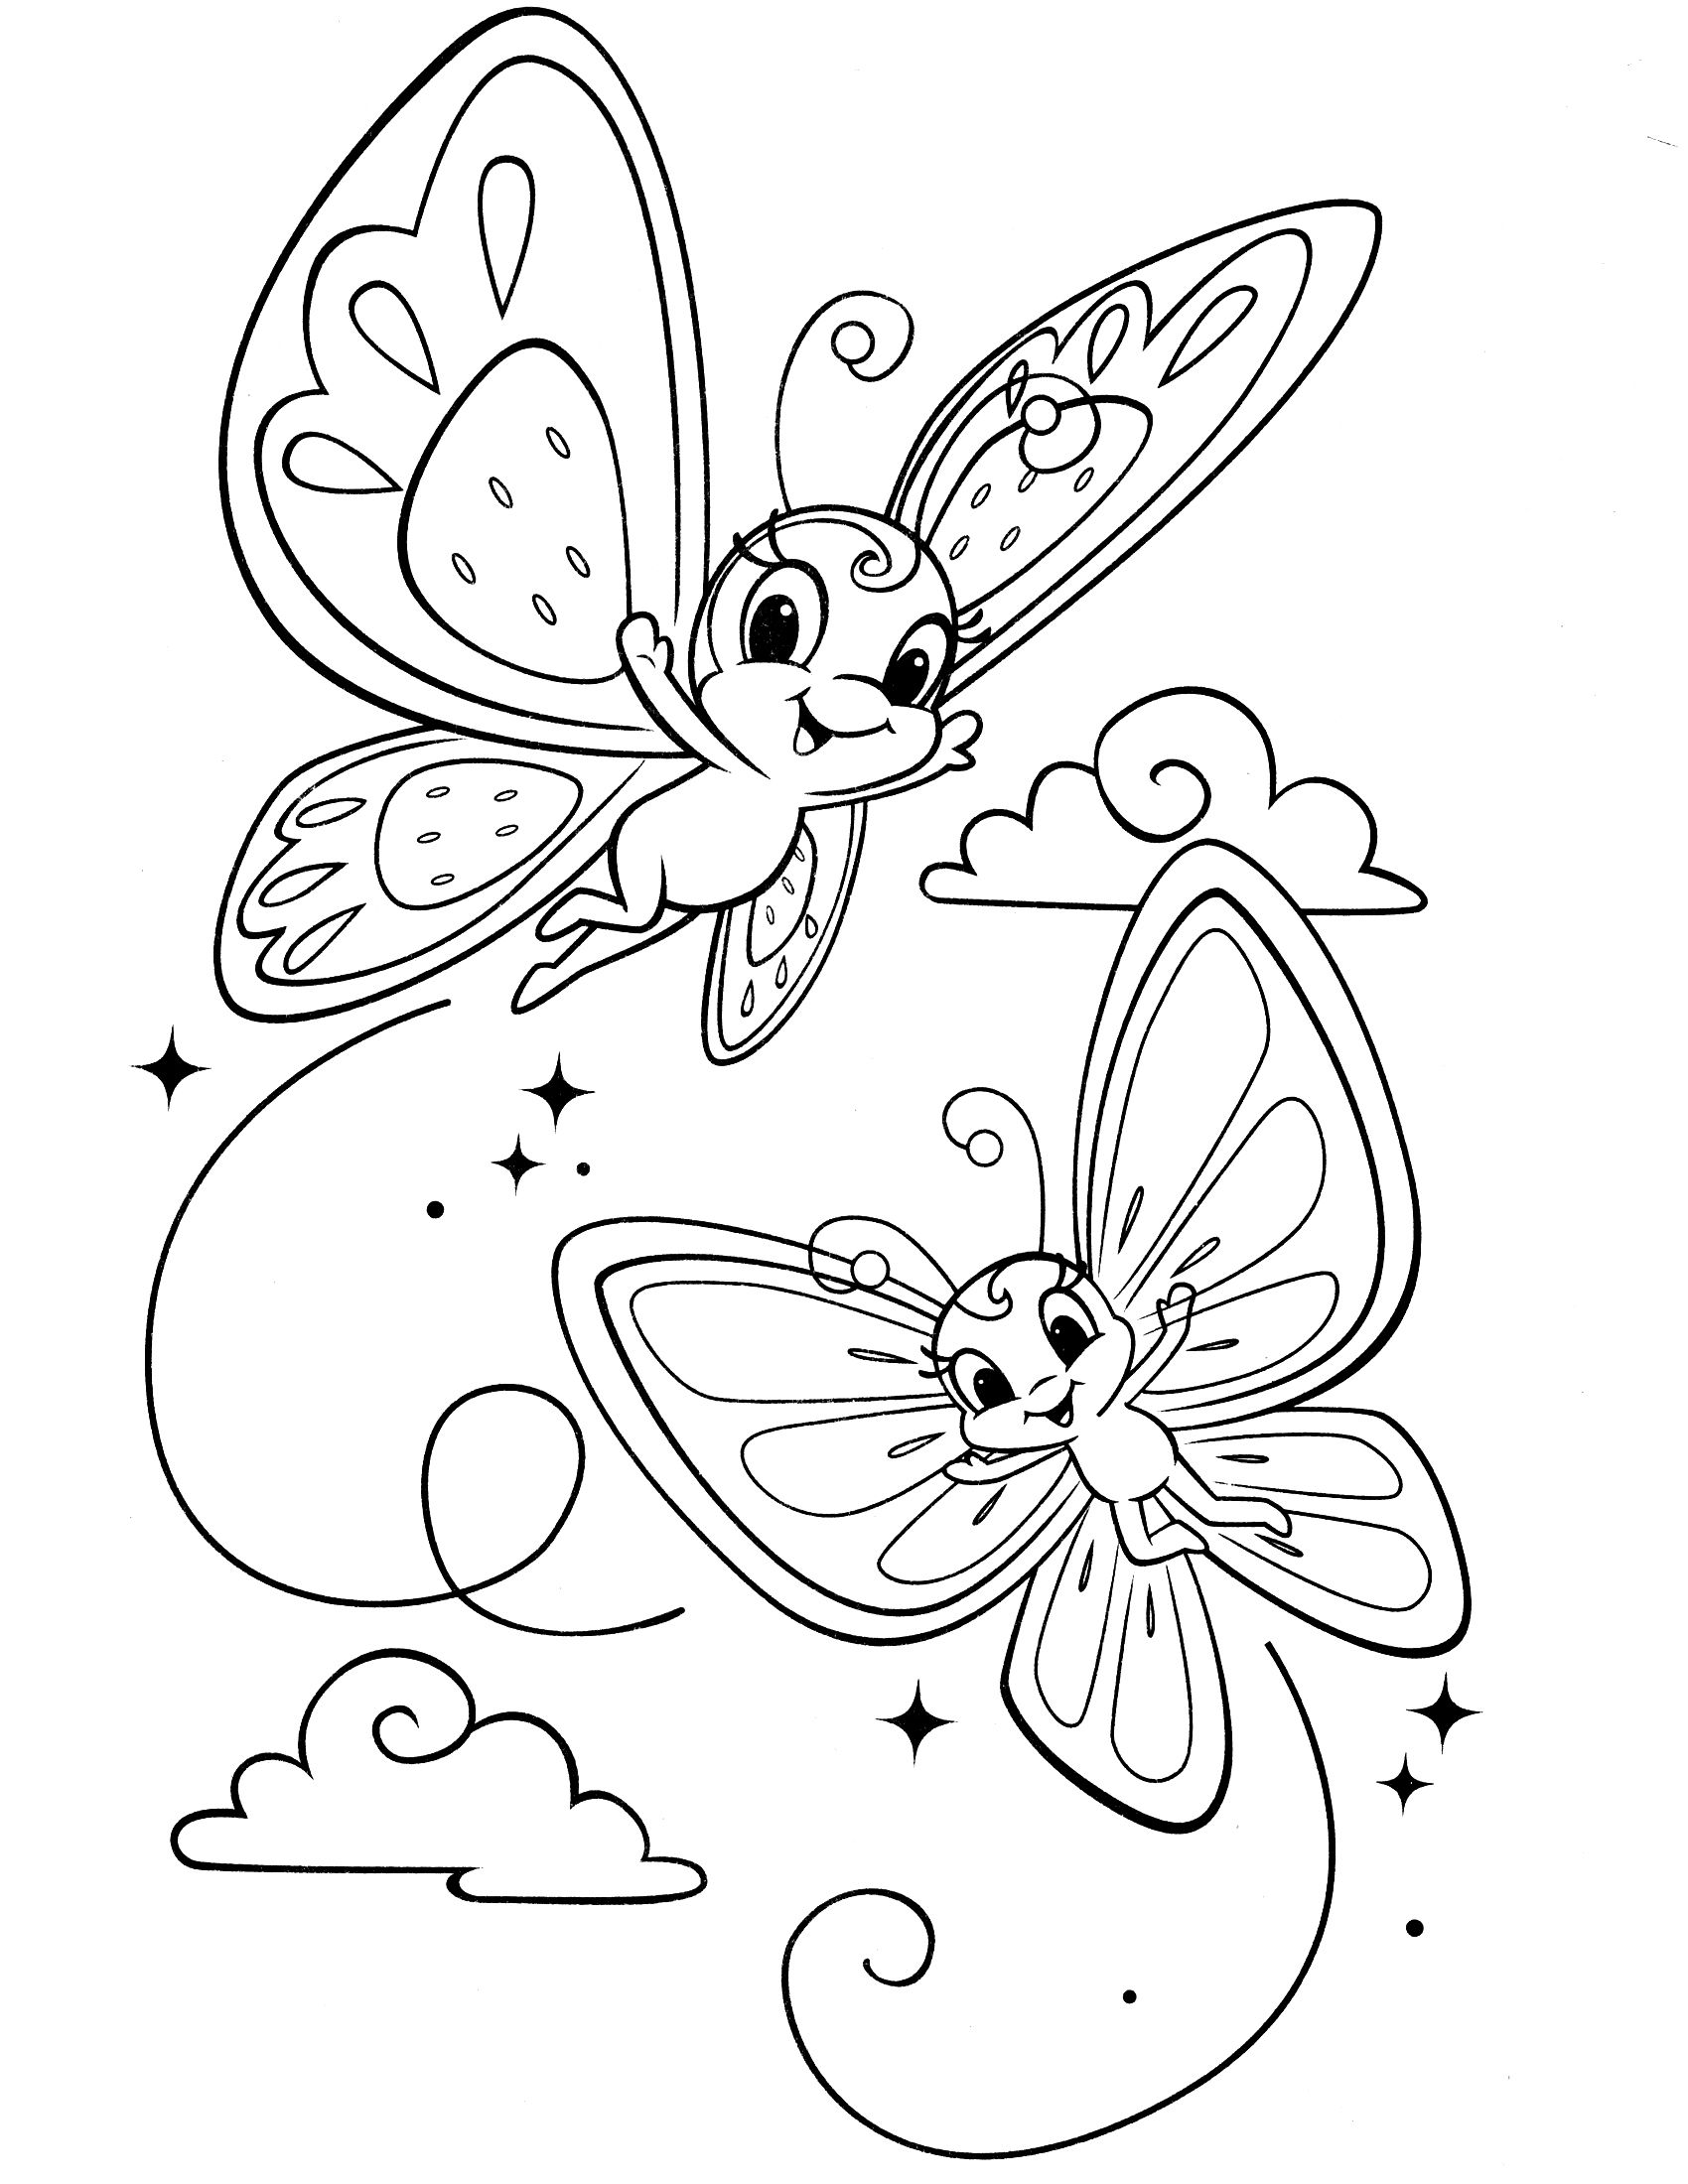 strawberry shortcake coloring page desenhos colorir